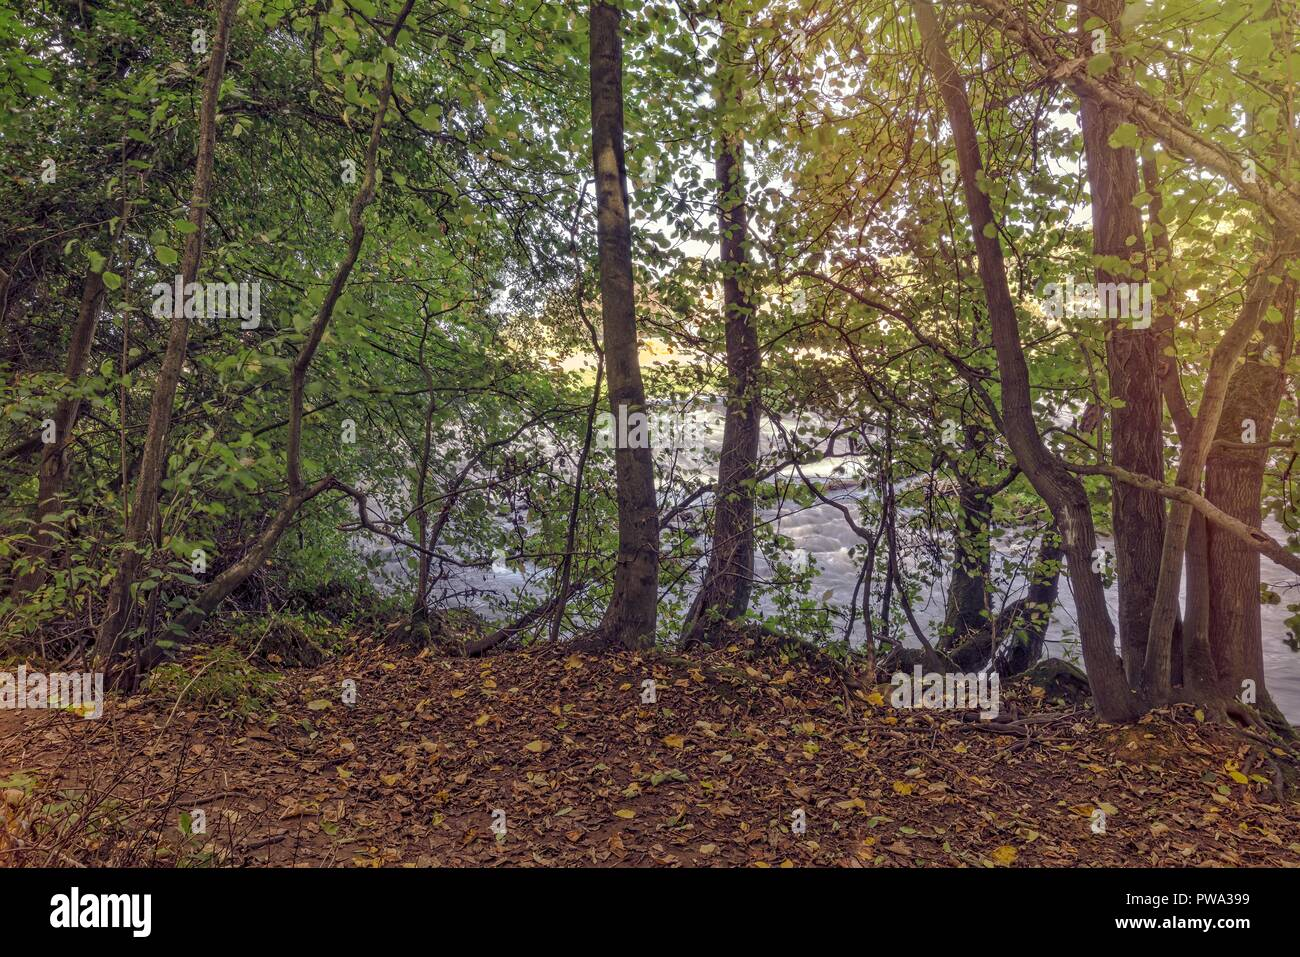 The edge of some woodland as it reaches a river.  The fallen leaves of early autumn are scattered around. Stock Photo